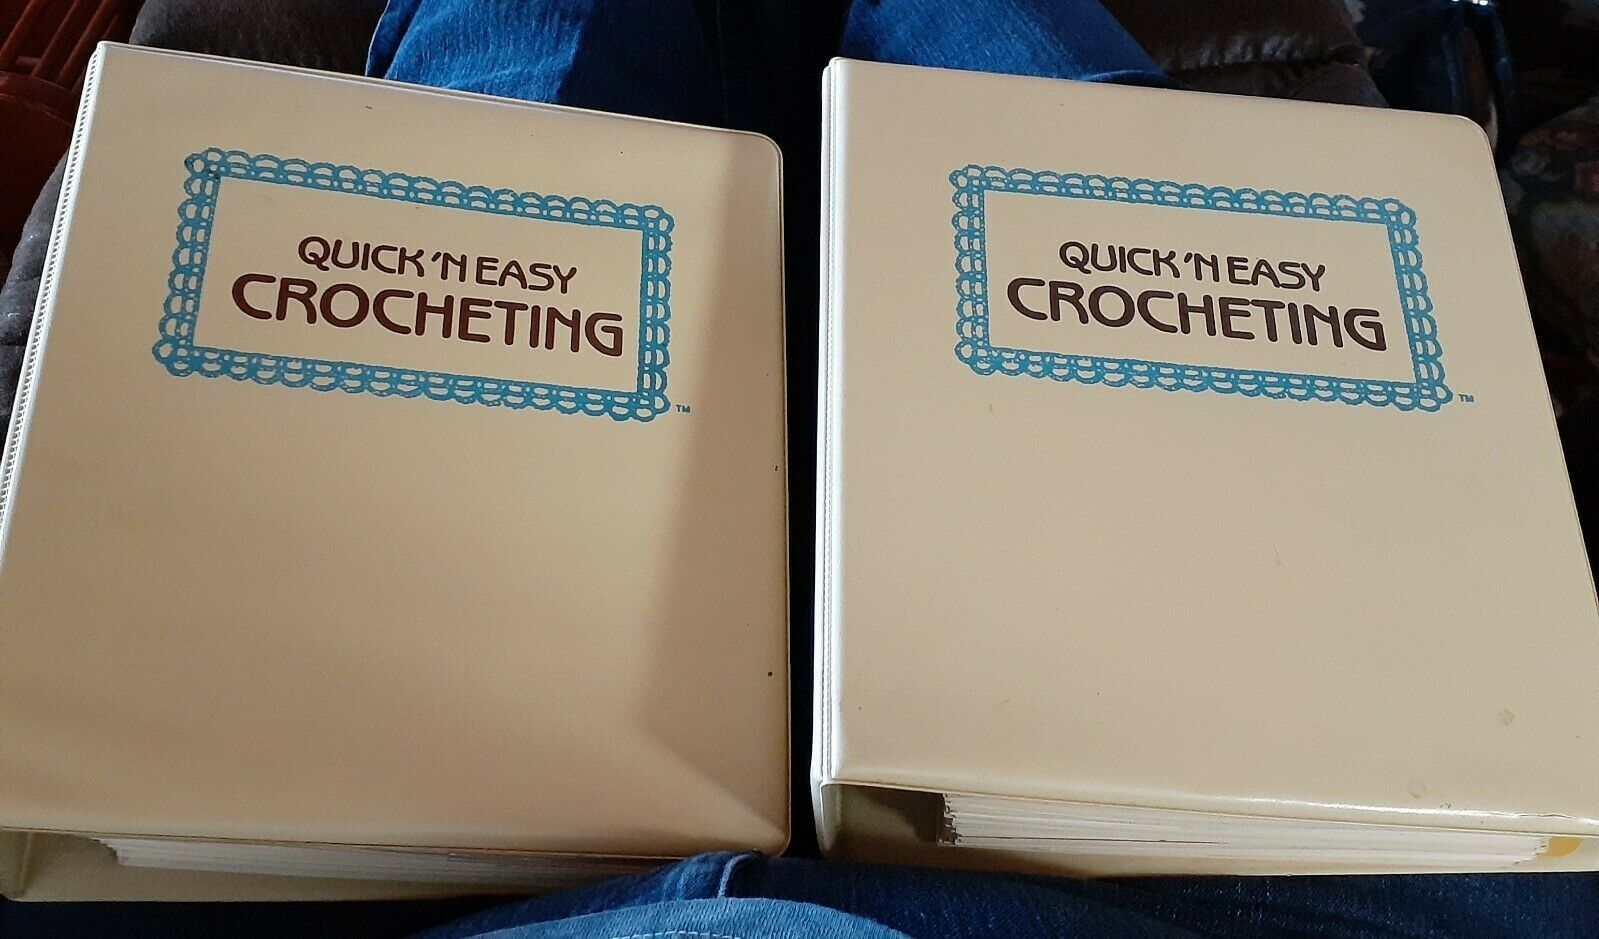 Set of 2 - Golden Quick 'N Easy Crocheting Pattern Books Binders with Contents